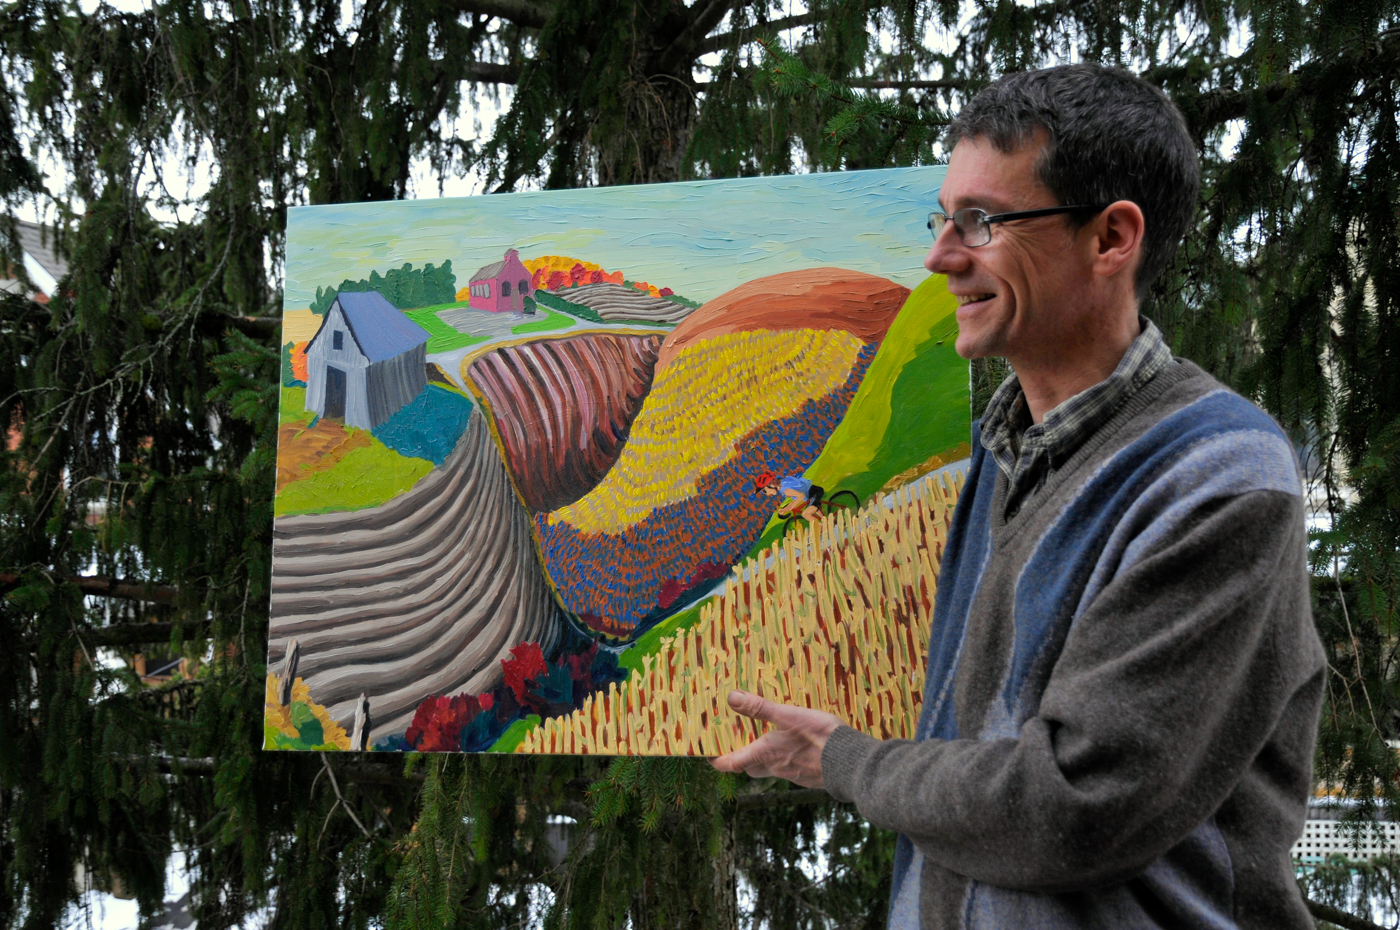 Terry Walters, and his regionally inspired art.